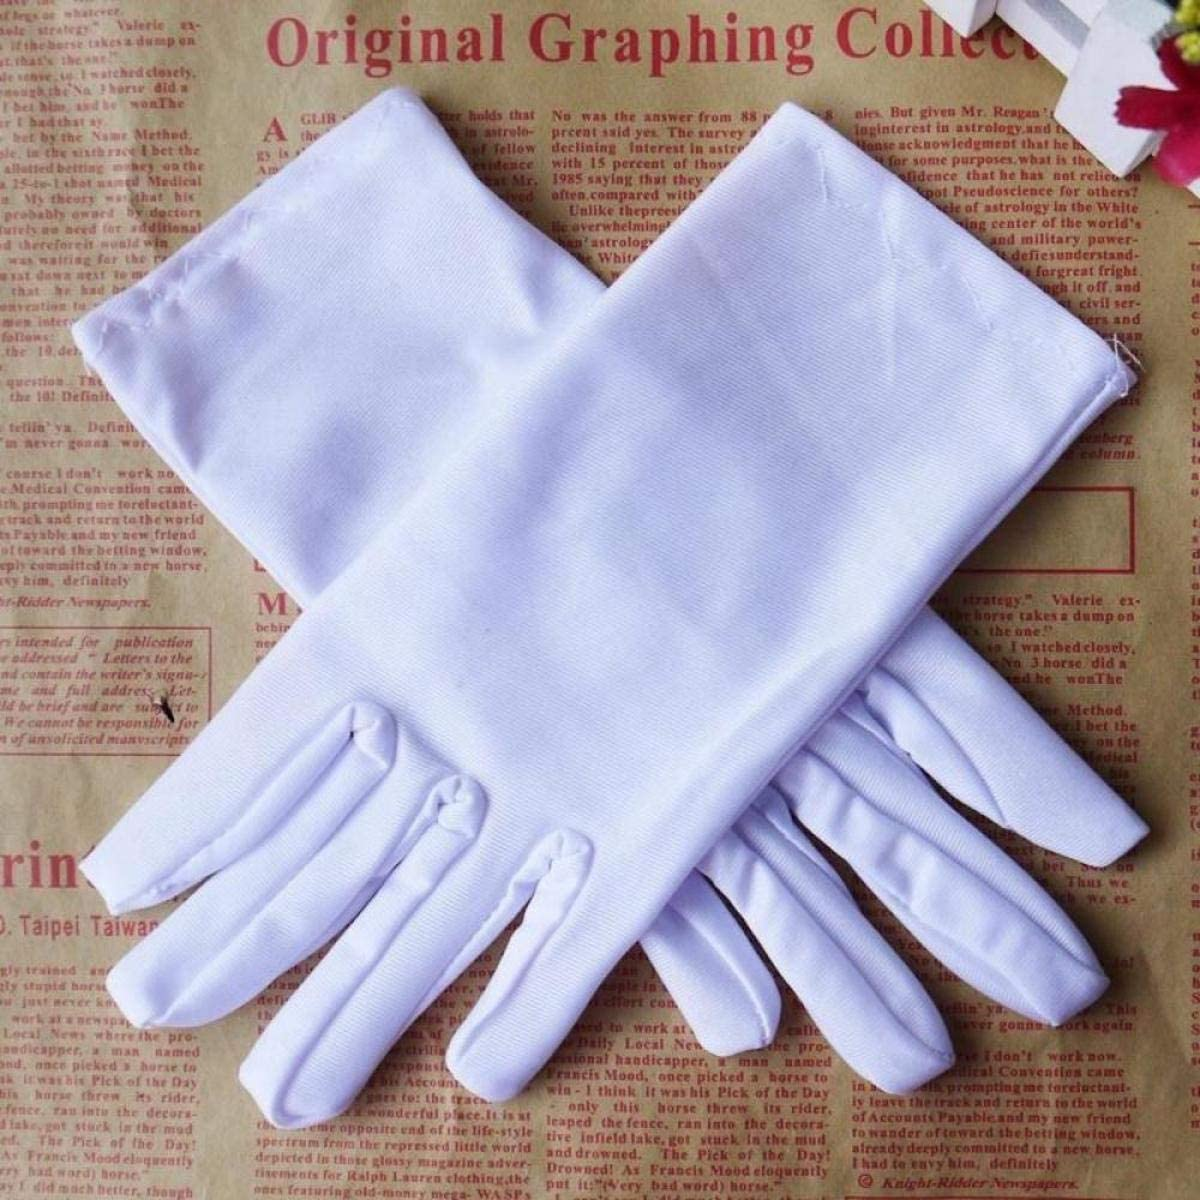 Jewelry Silver Inspection Gloves Medium Size Black EOPER Satin Gloves for Women 5 Pairs Formal Wrist Length Gloves Short Satin Glove Coin for Wedding Evening Party Opera